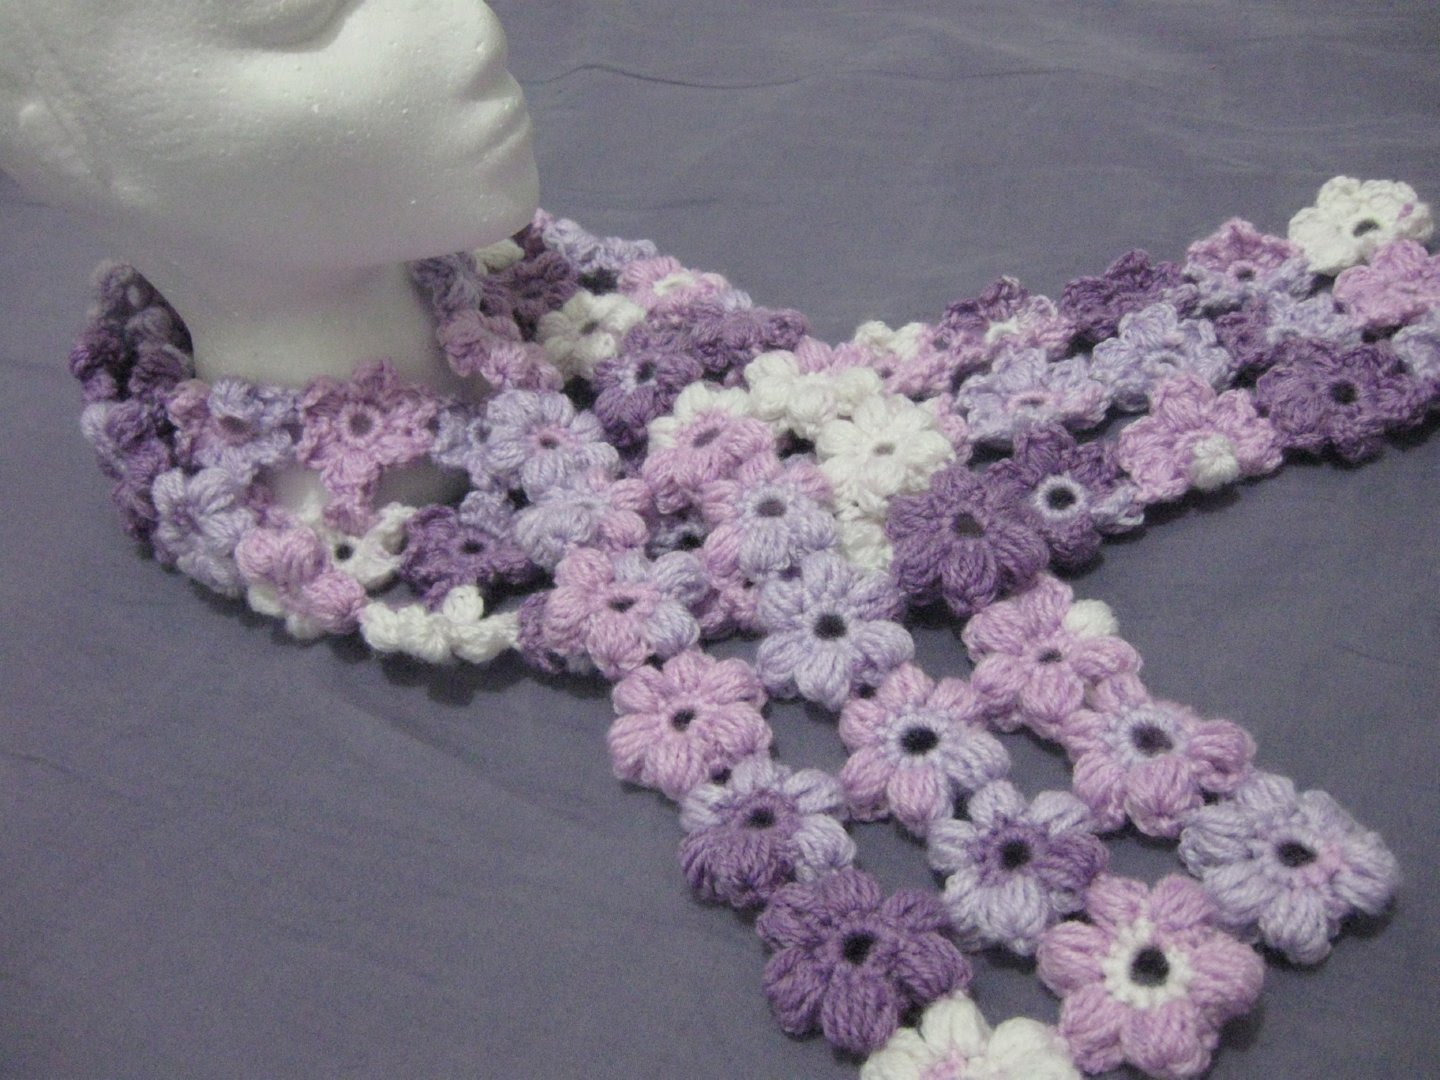 3 Magnificent Ideas of the Free Crochet Rose Afghan Pattern Gorgeous Scrap Yarn Puff Stitch Flower Scarf Pattern To Amp Up Your